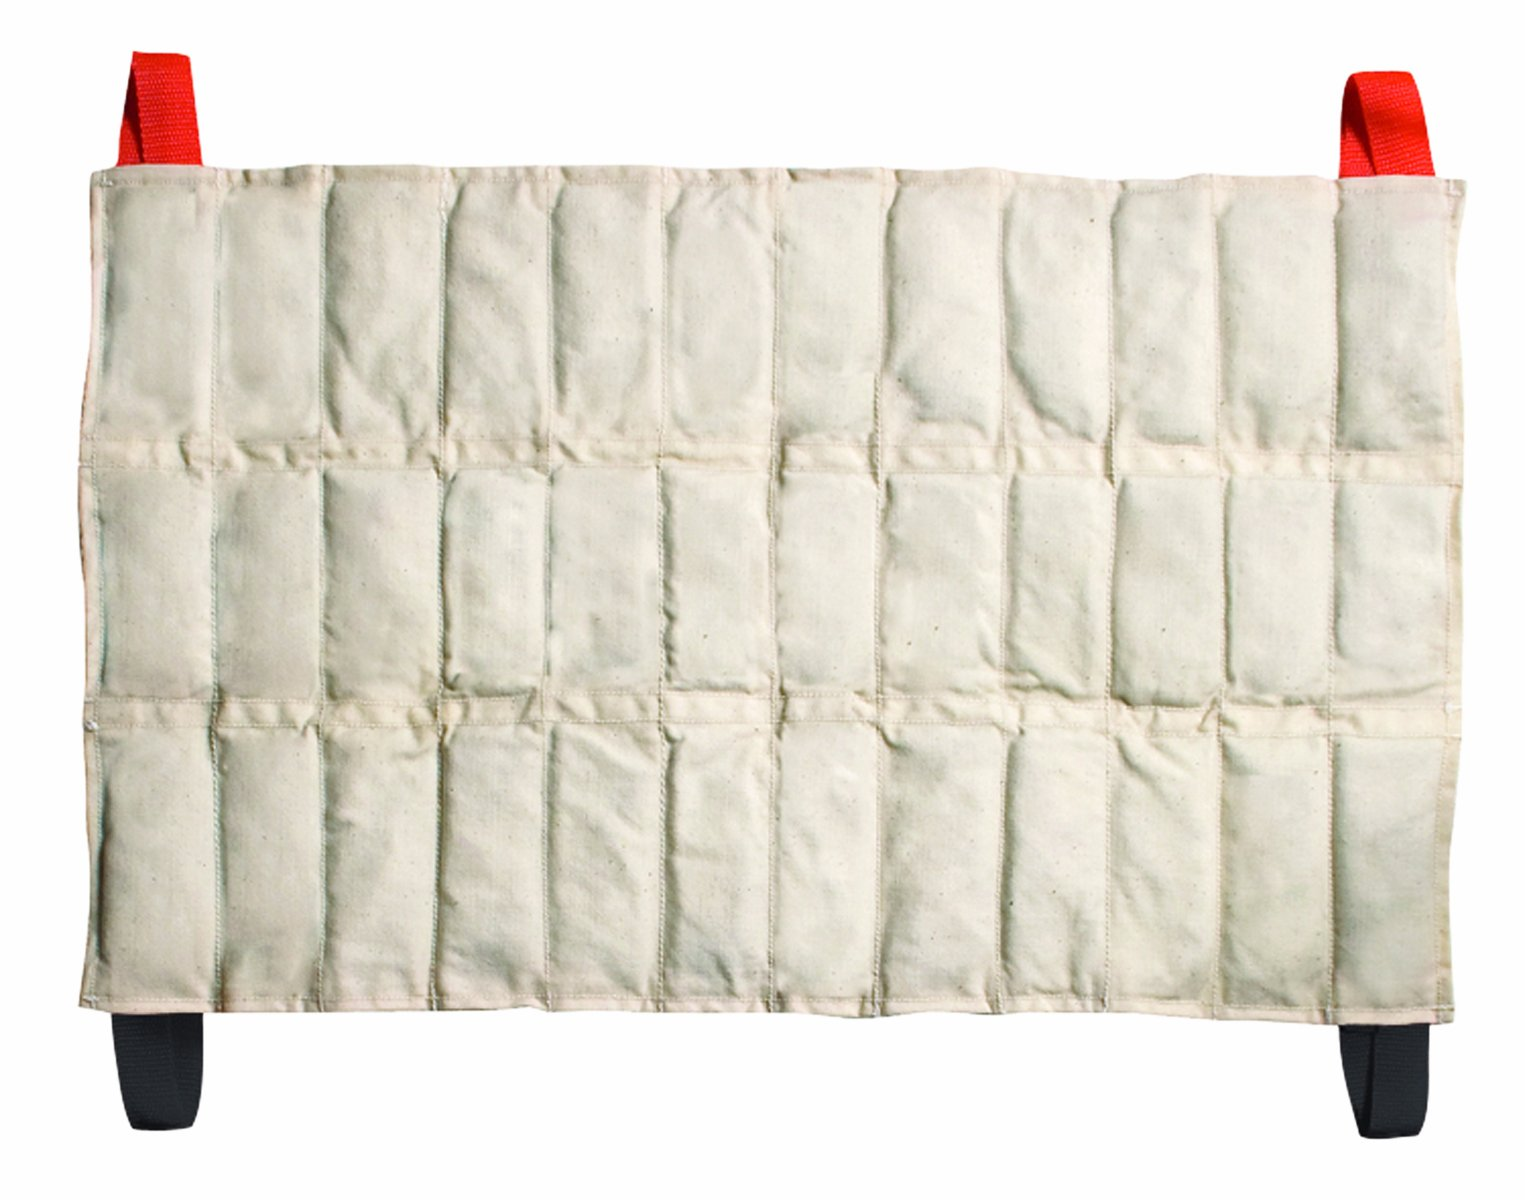 Relief Pak 11-1312-12 Hotspot Moist Heat Pack, Oversize, 15'' x 24'' (Pack of 12) by Relief Pak